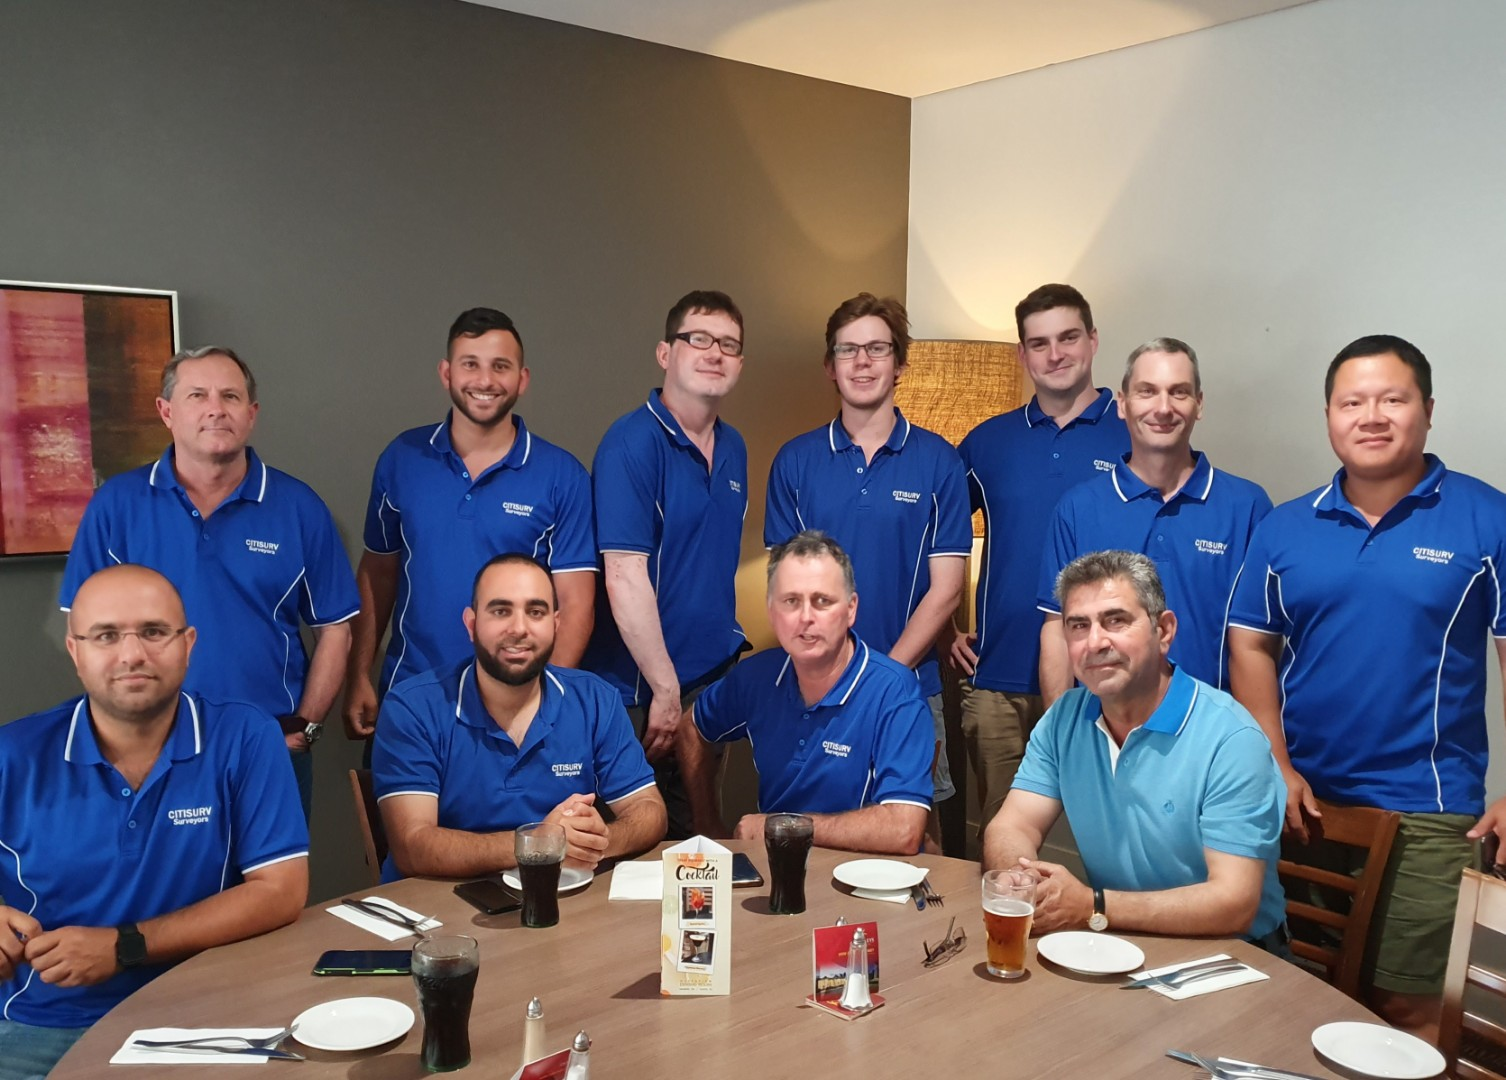 CitiSurv Land Surveyors Sydney Team